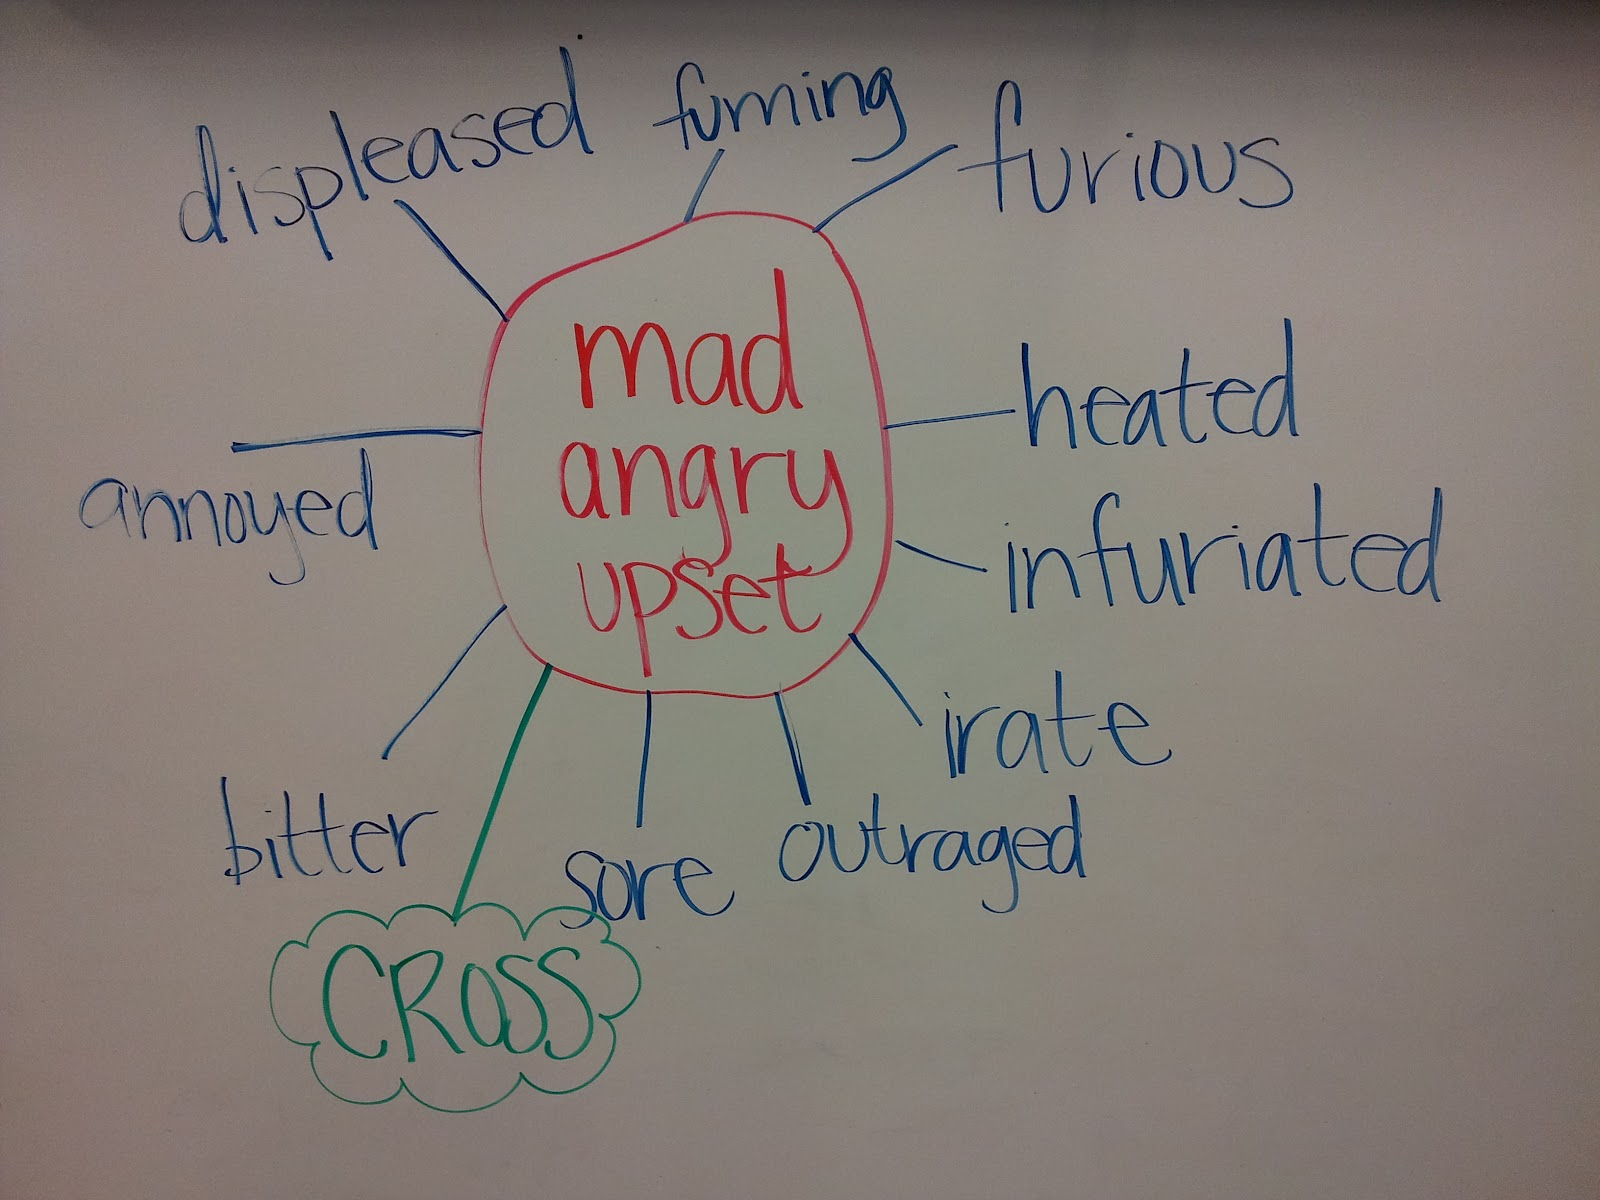 The magic finger by roald dahl grammar gumbo i put mad angry and upset in the center of a spider diagram and i added synonyms as the legs ccuart Images